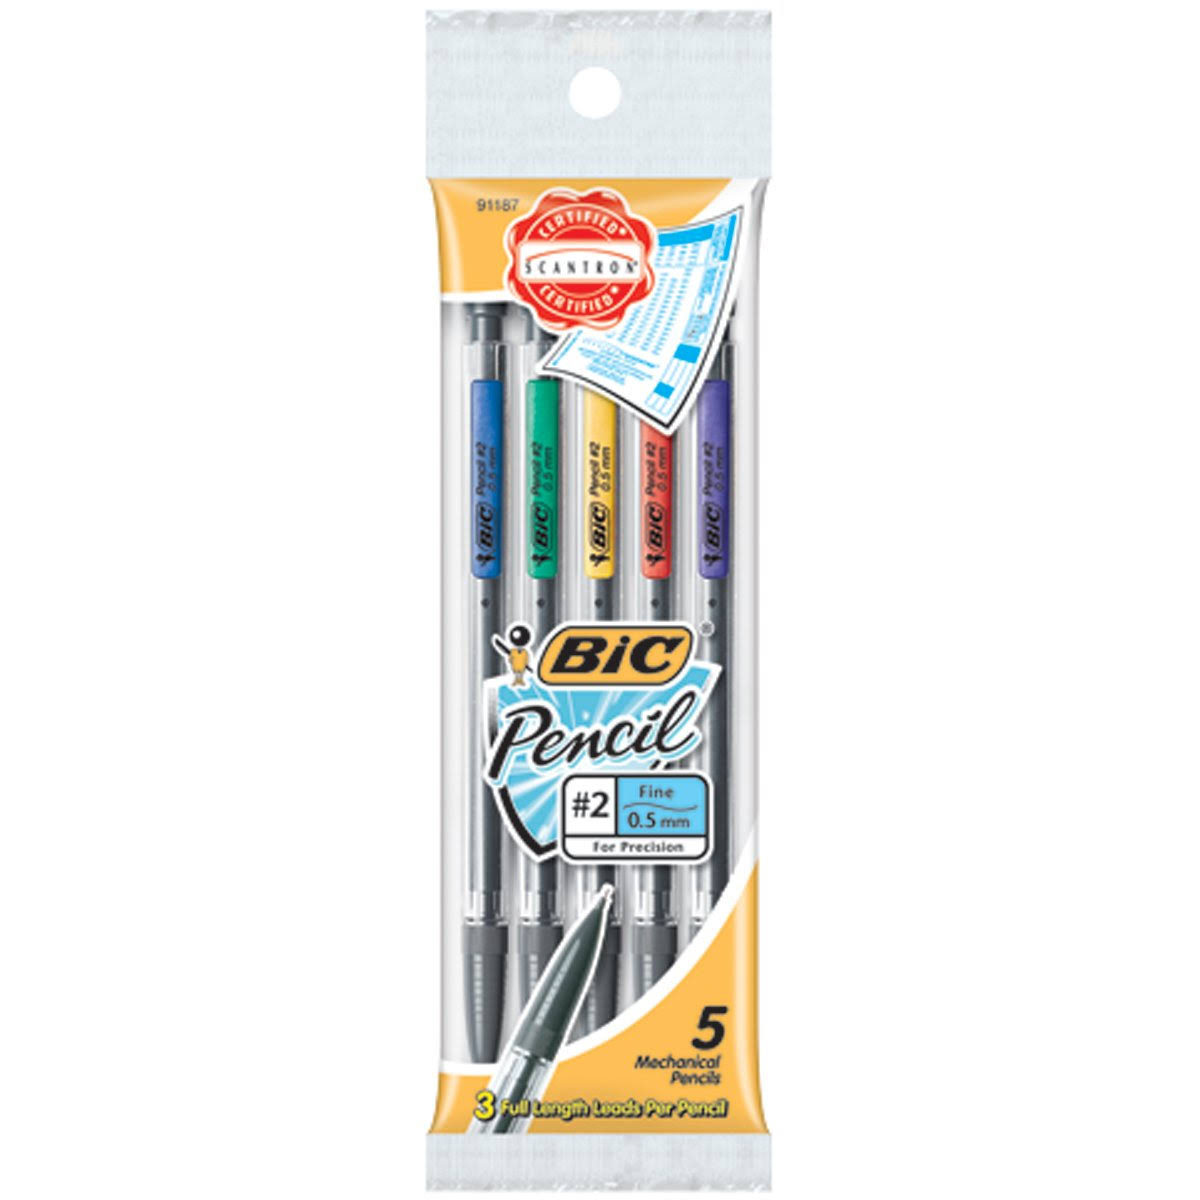 Bic Pencil Xtra Precision - 5 Pencils, 0.5mm